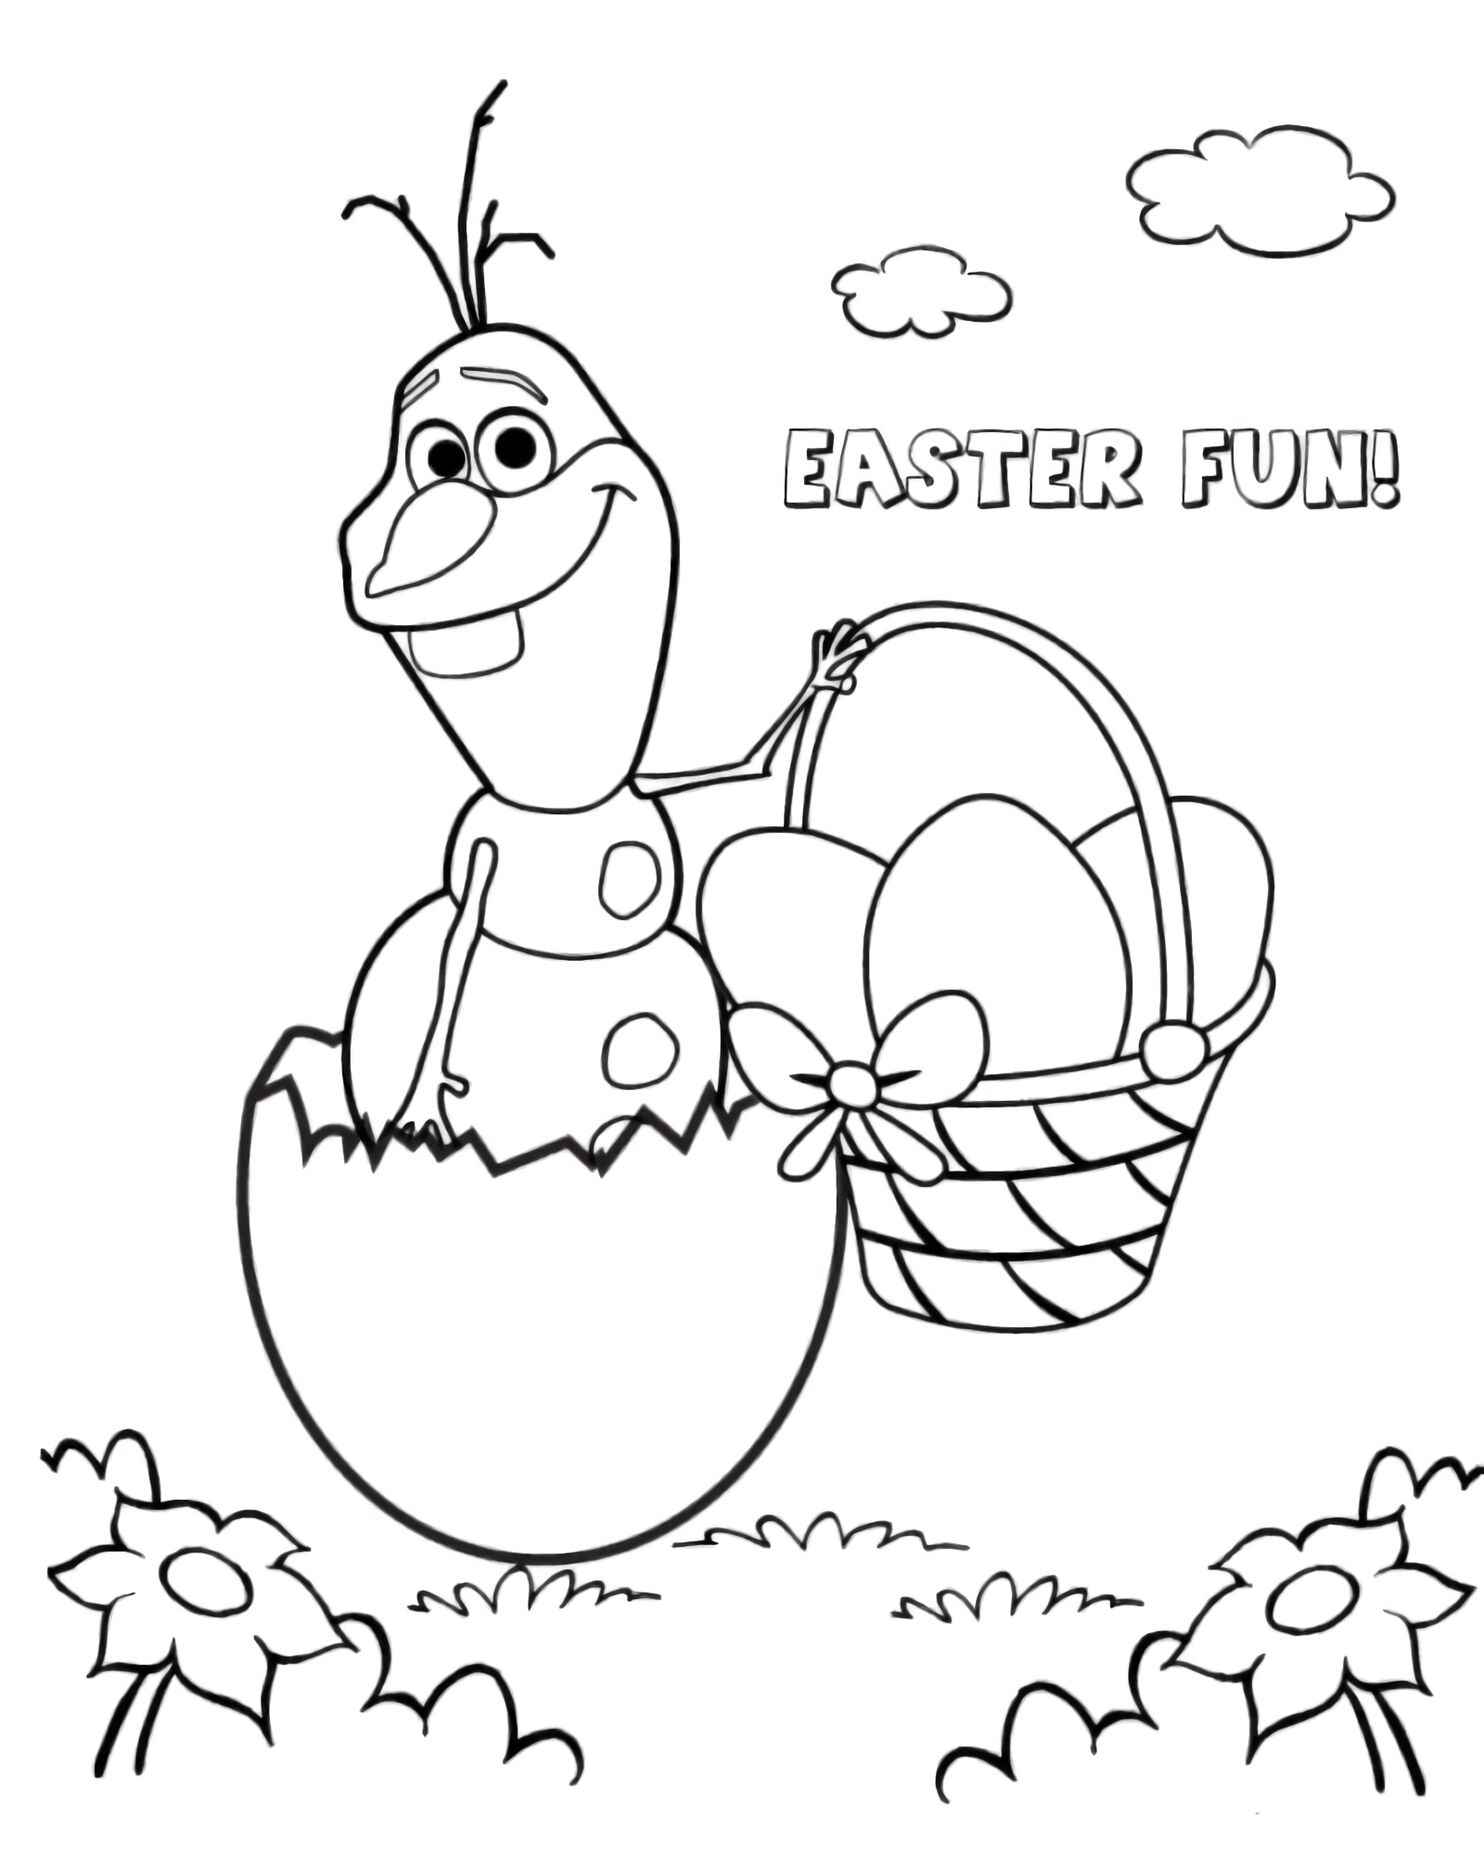 Simple Easter Egg Coloring Page to Print and Download